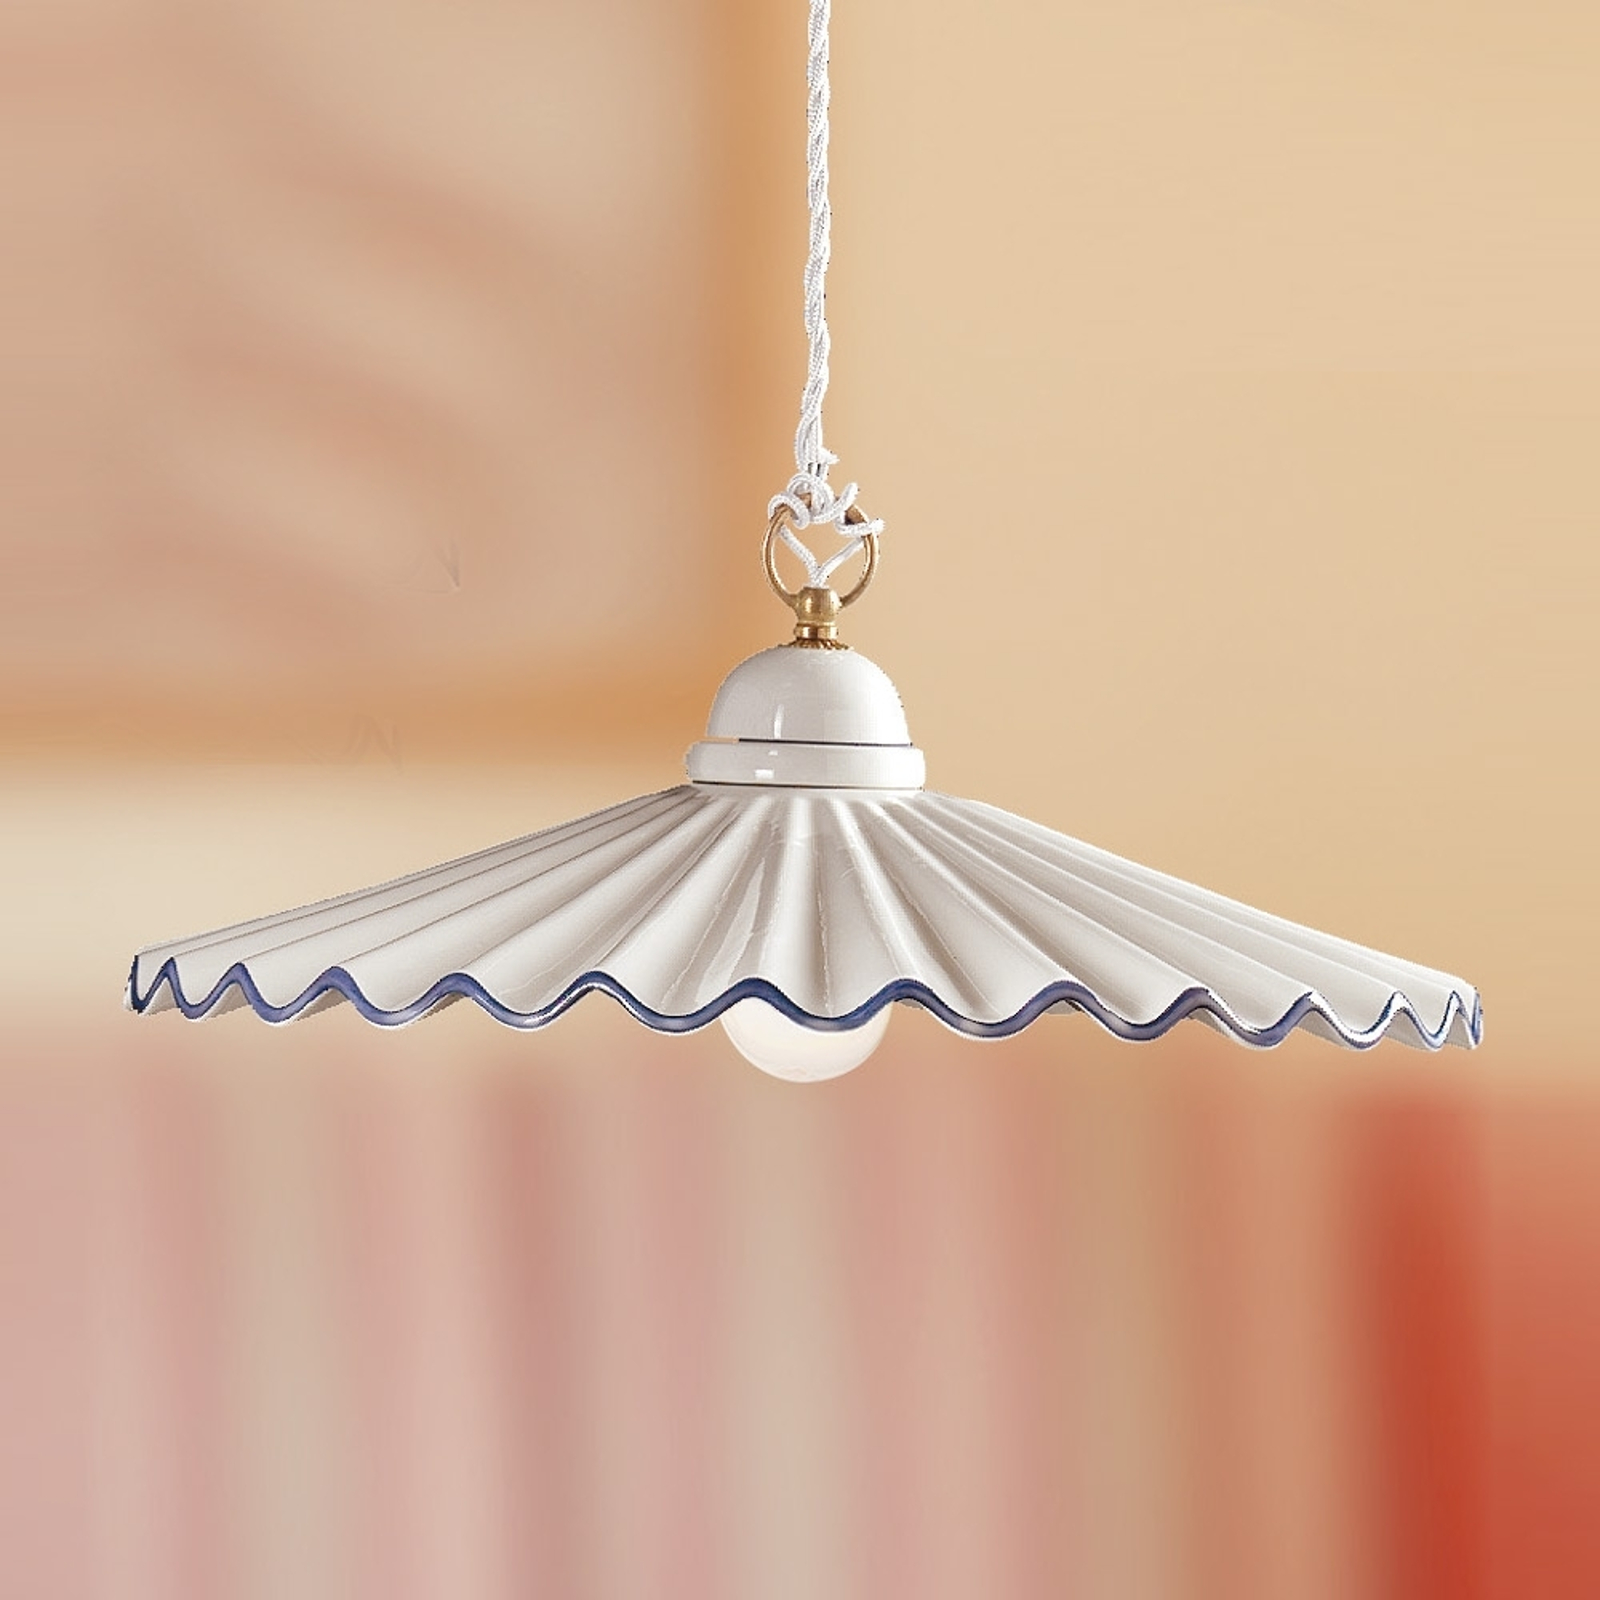 PIEGHE pendant light in a country house style_2013002_1